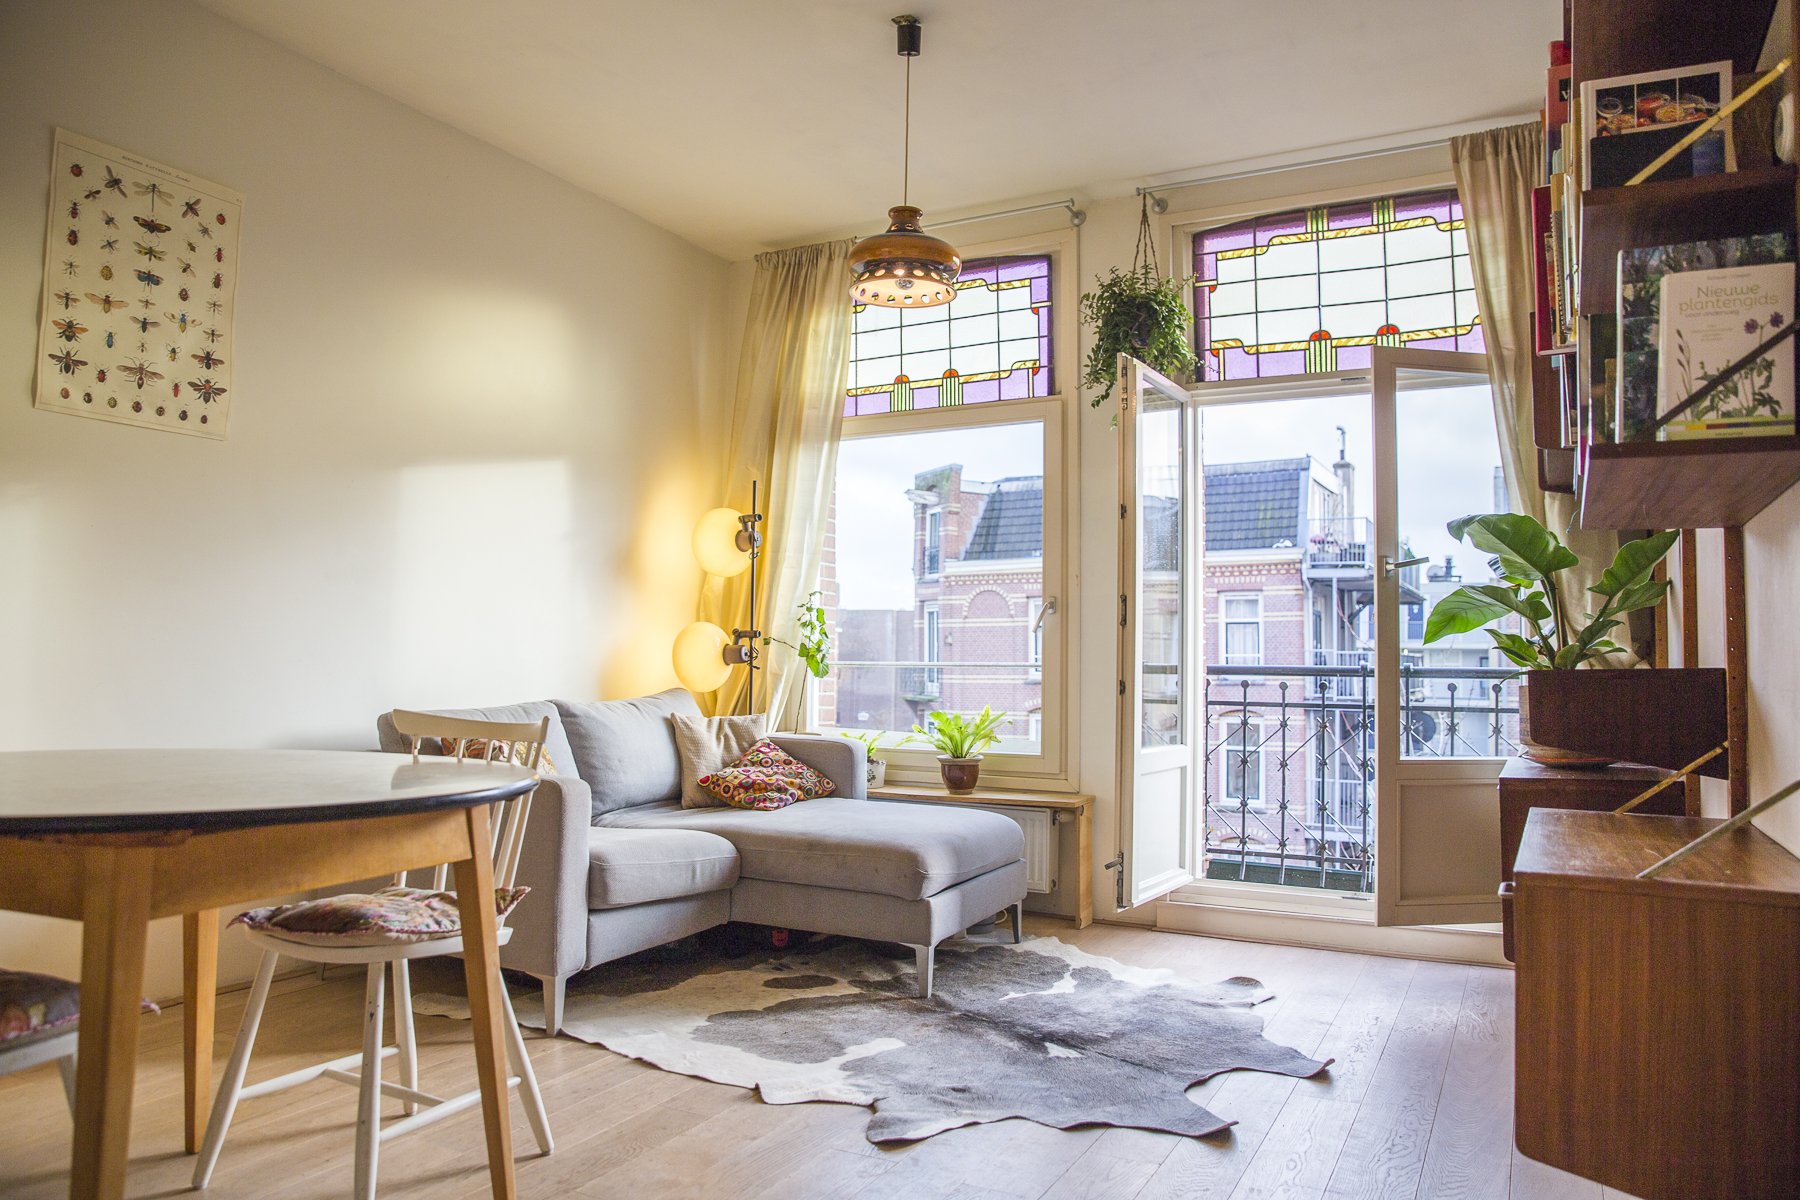 Interieur privéwoning